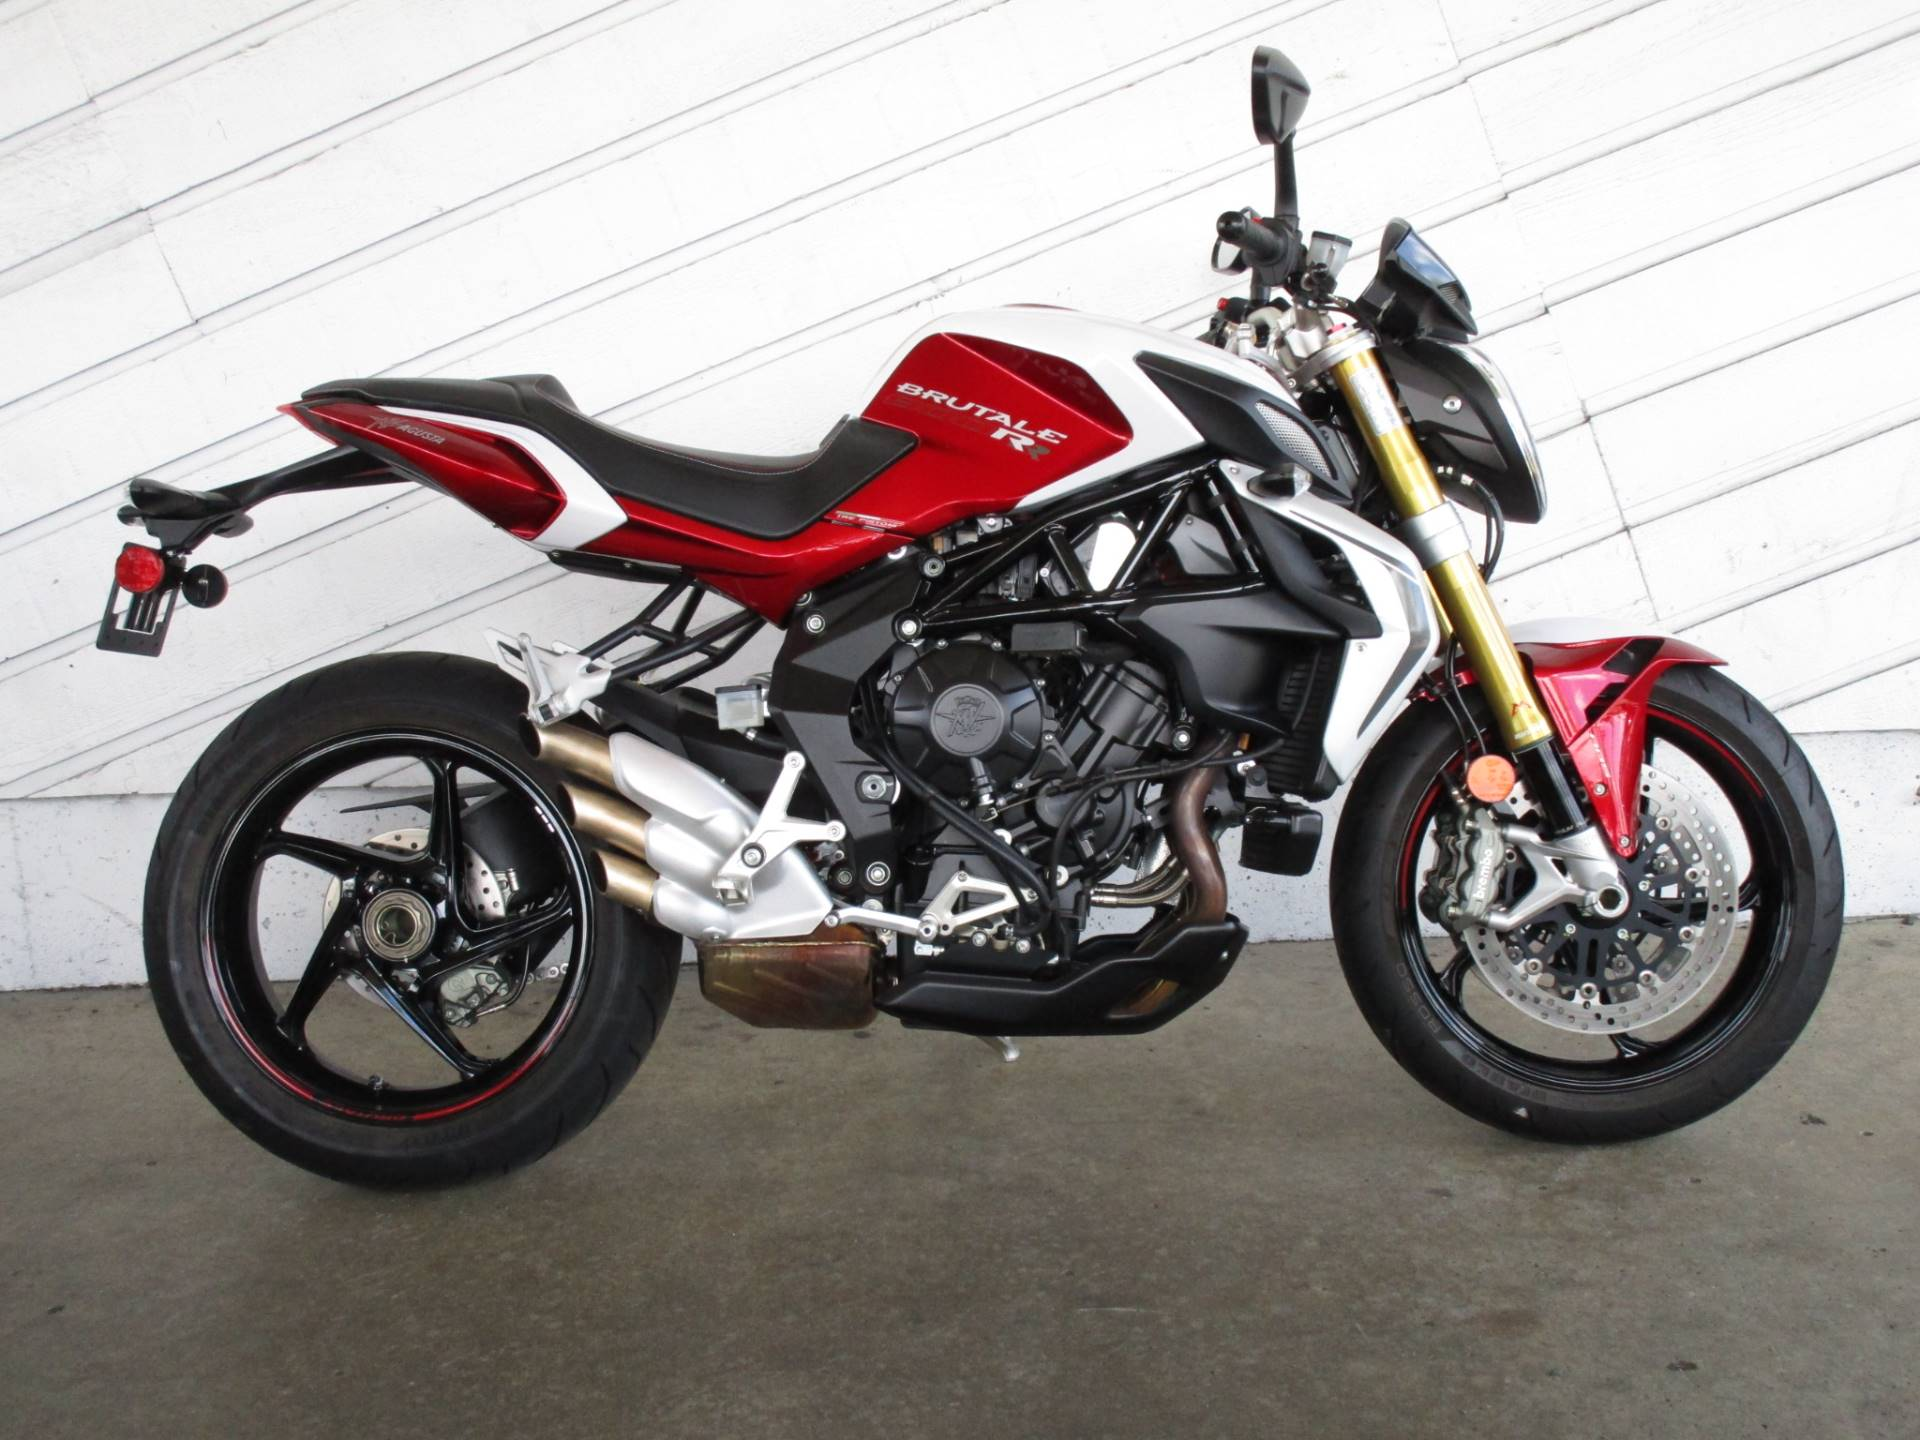 2015 MV Agusta Brutale 800 RR in Bellevue, Washington - Photo 1